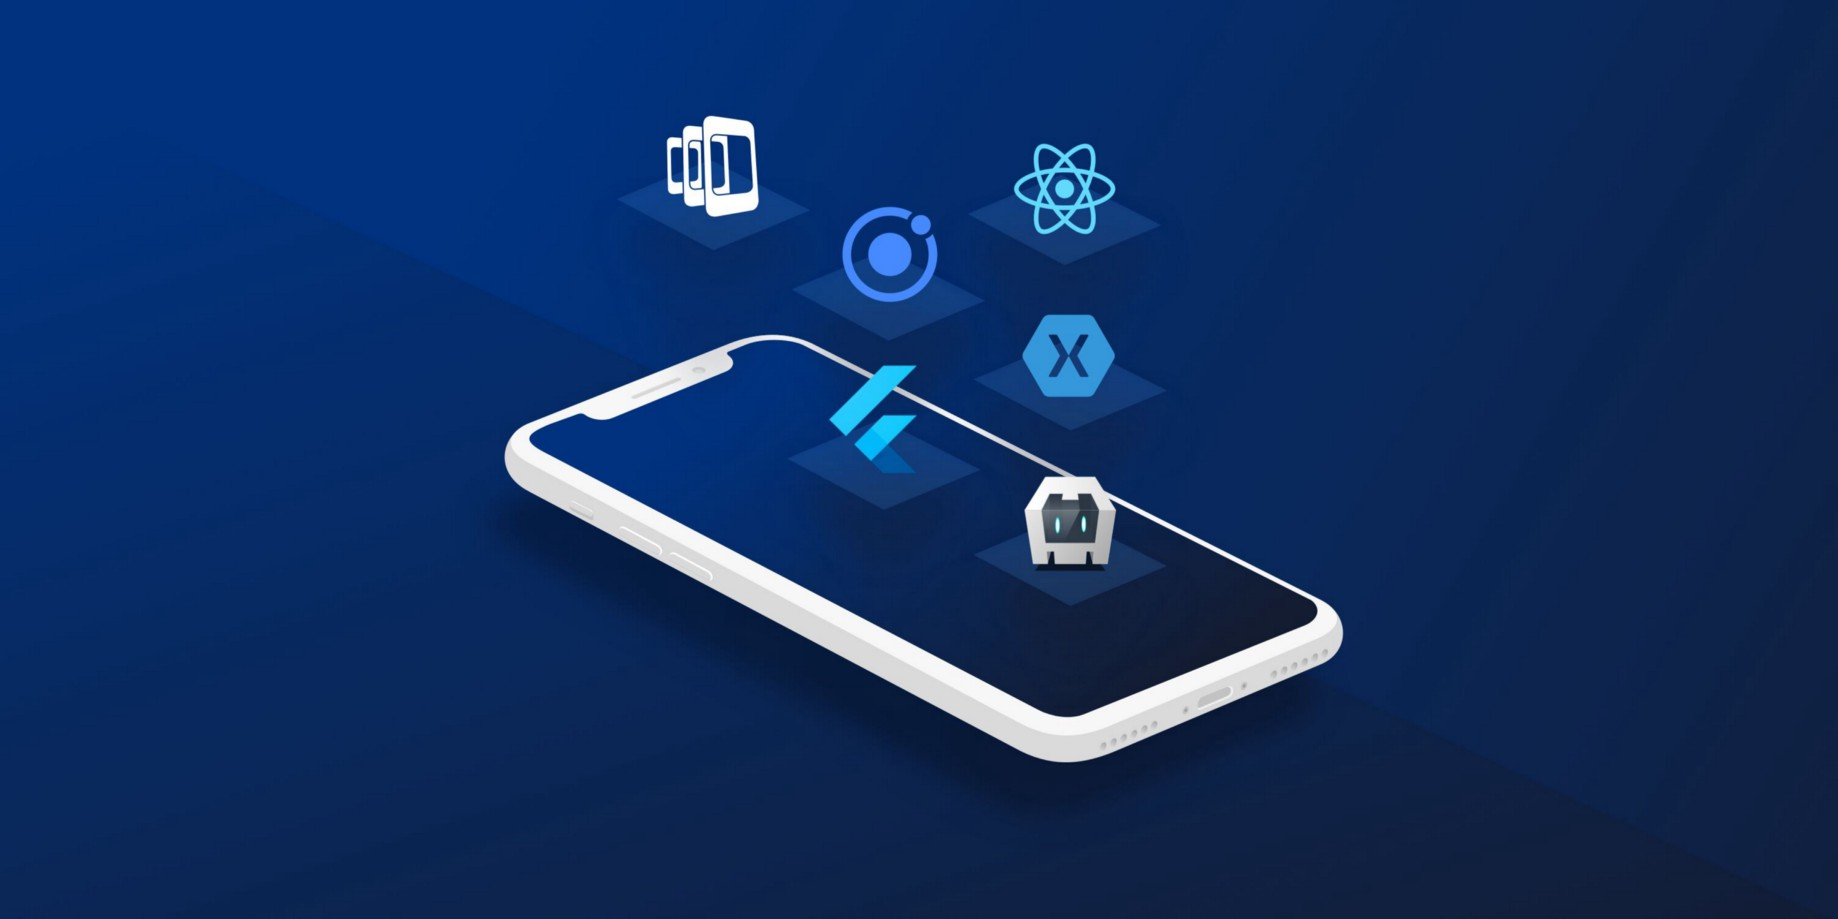 Mobile App Development And Design: 12 Tips You Should Know